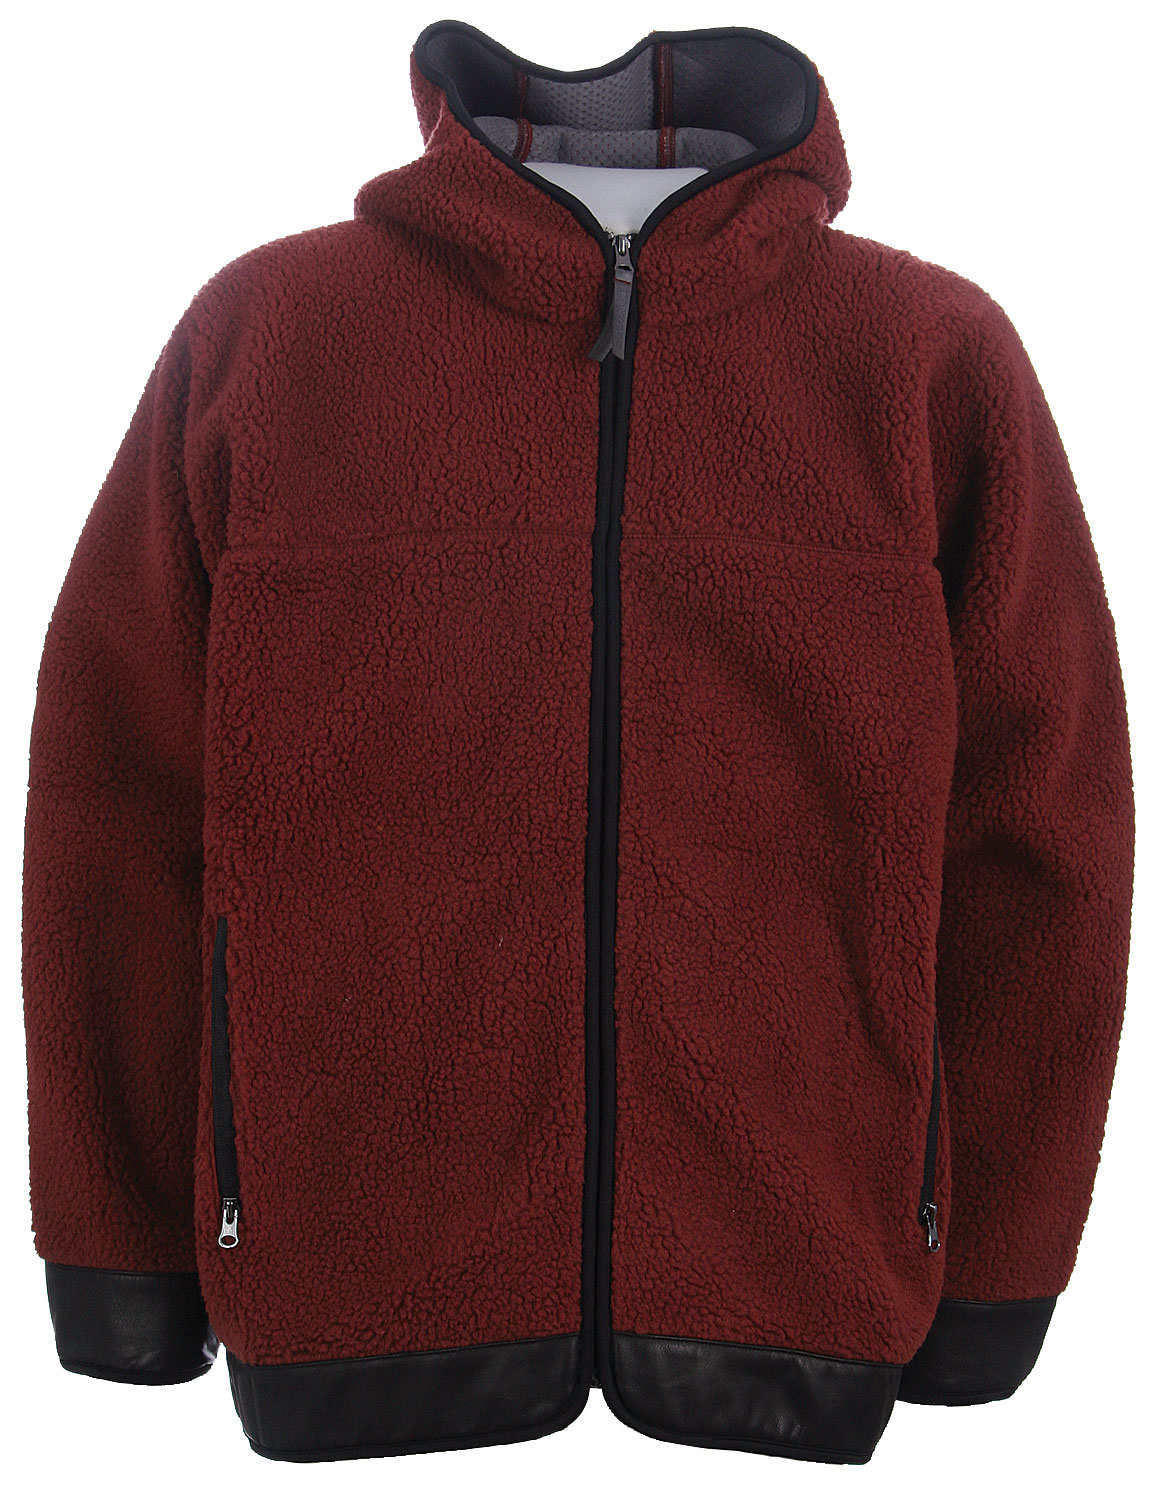 Snowboard The Burton Canal Fleece Parka is a water & wind resistant fleece with microfleece lining. - $48.95